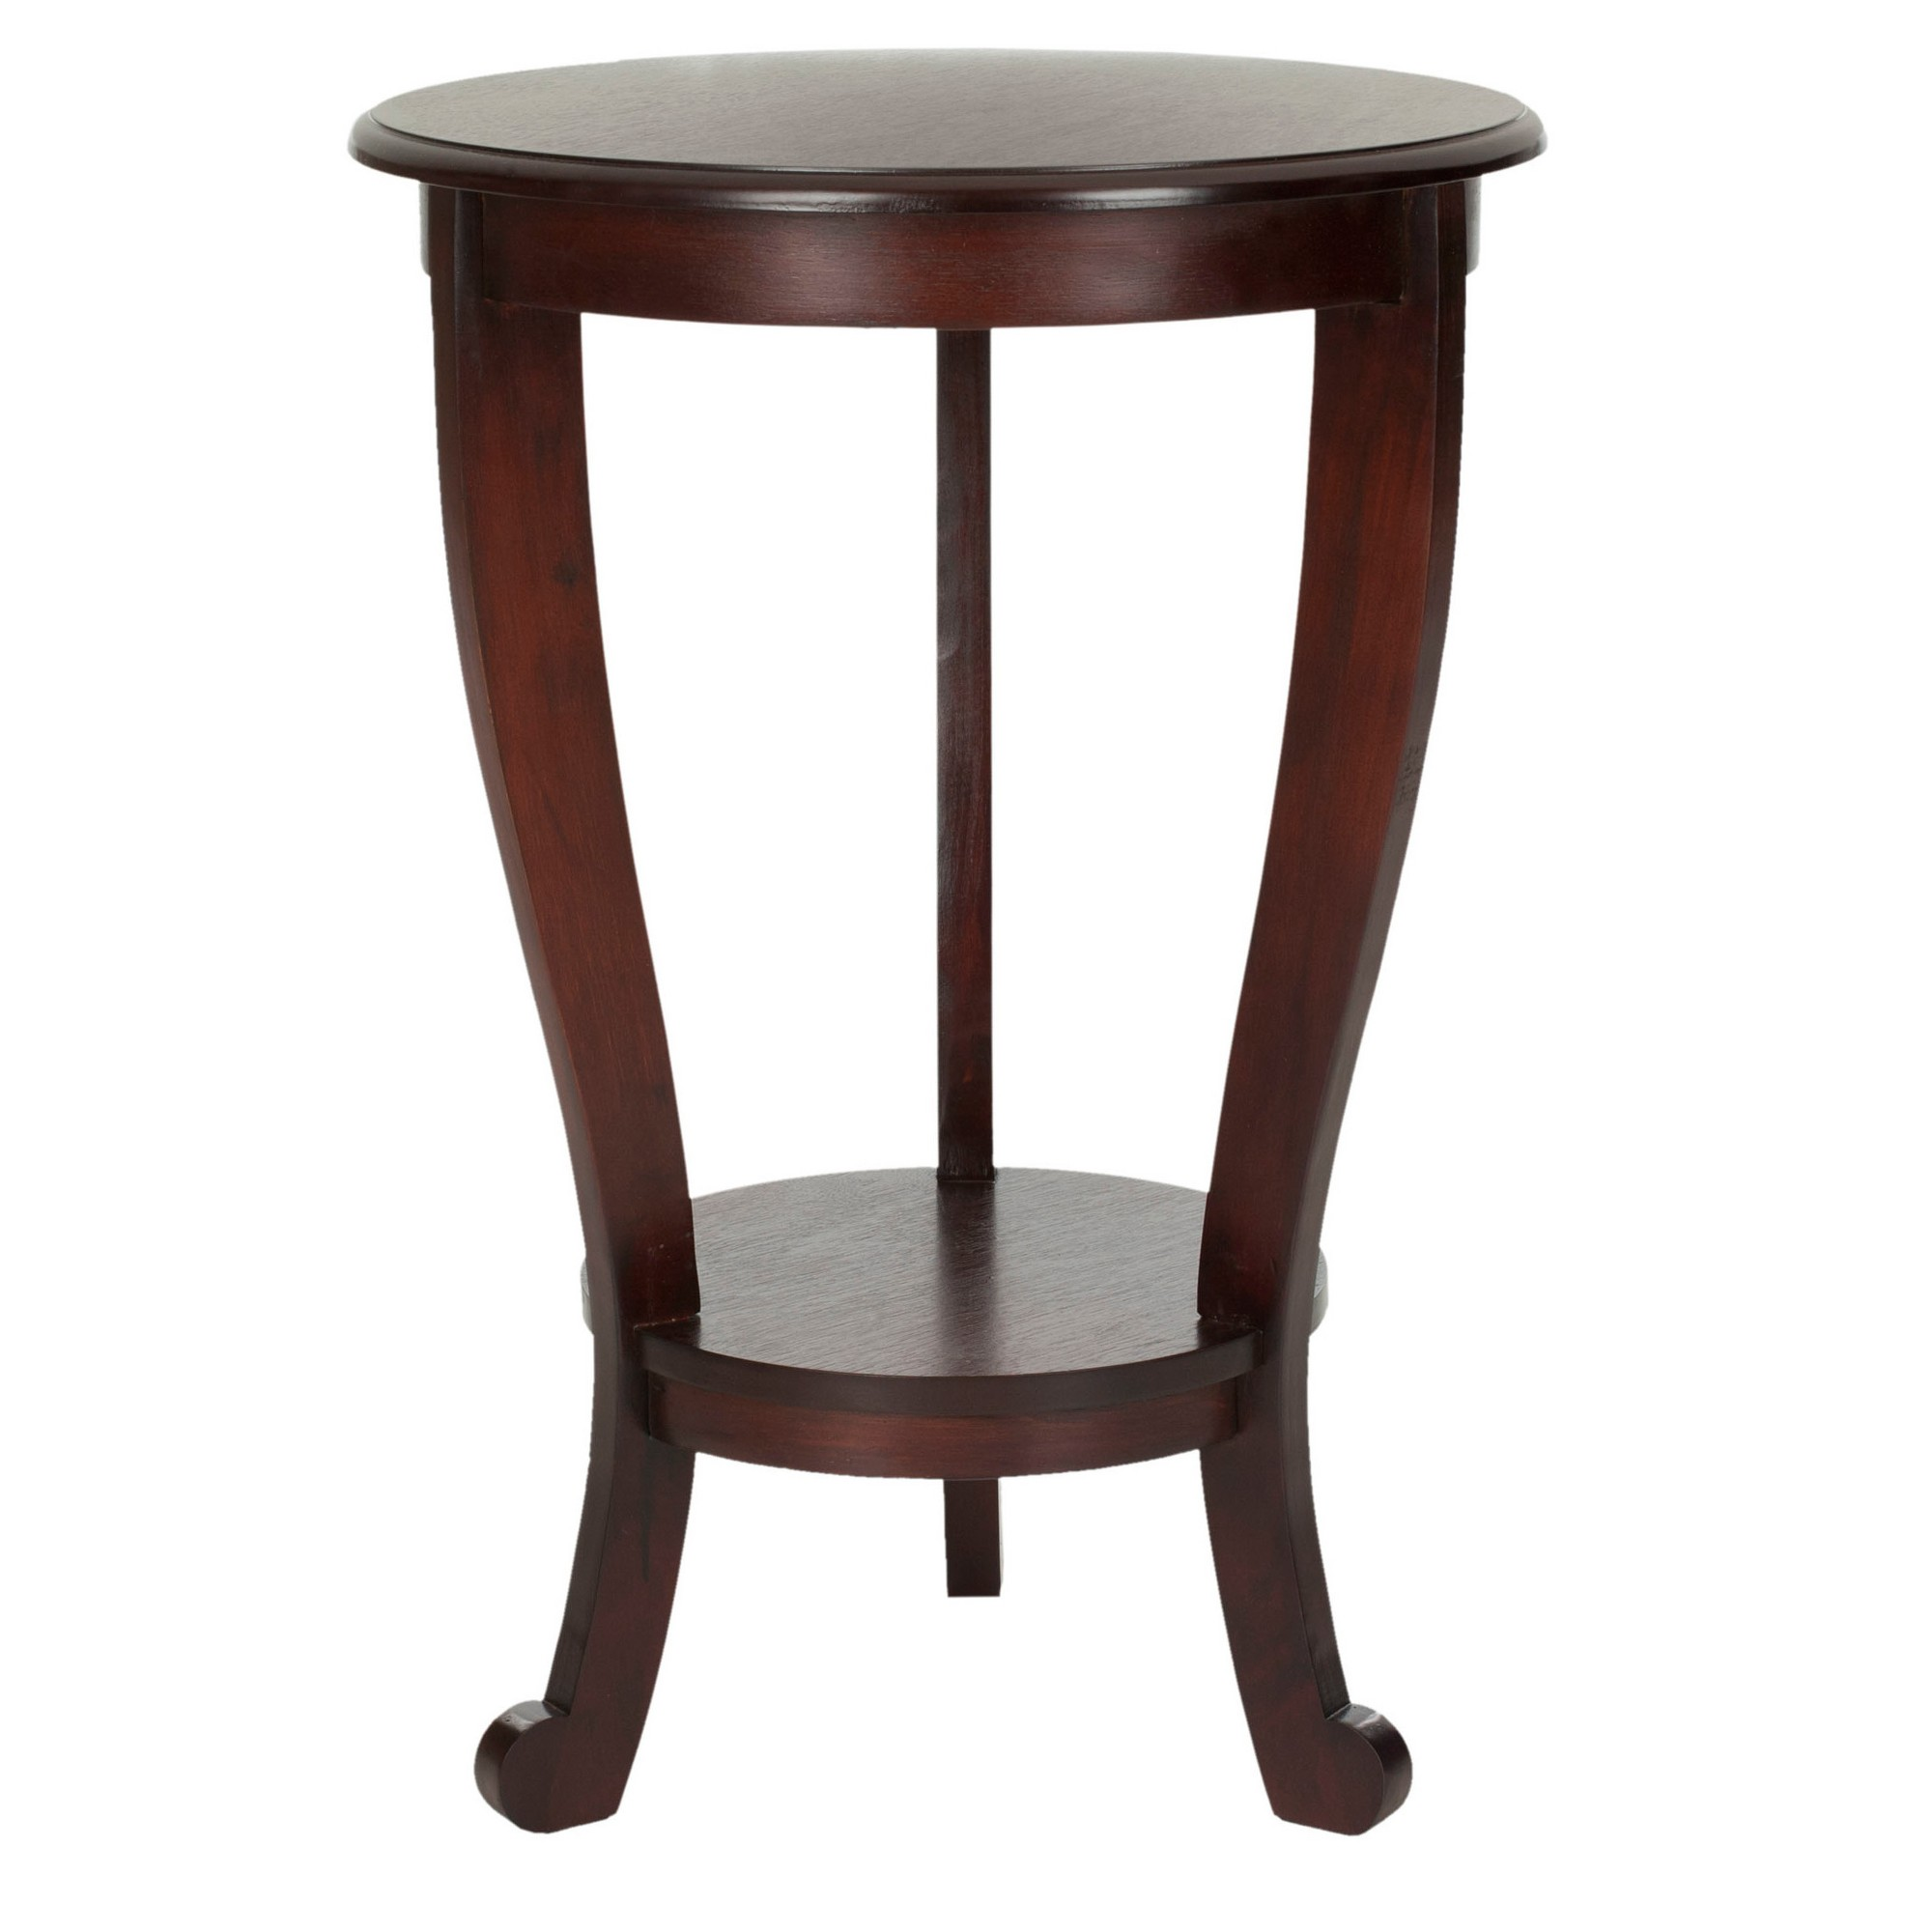 bette accent table cherry red safavieh products wood white cloth tablecloths ikea desk rustic couch west elm cushions thai rain drum pub dining pottery barn room sets side with